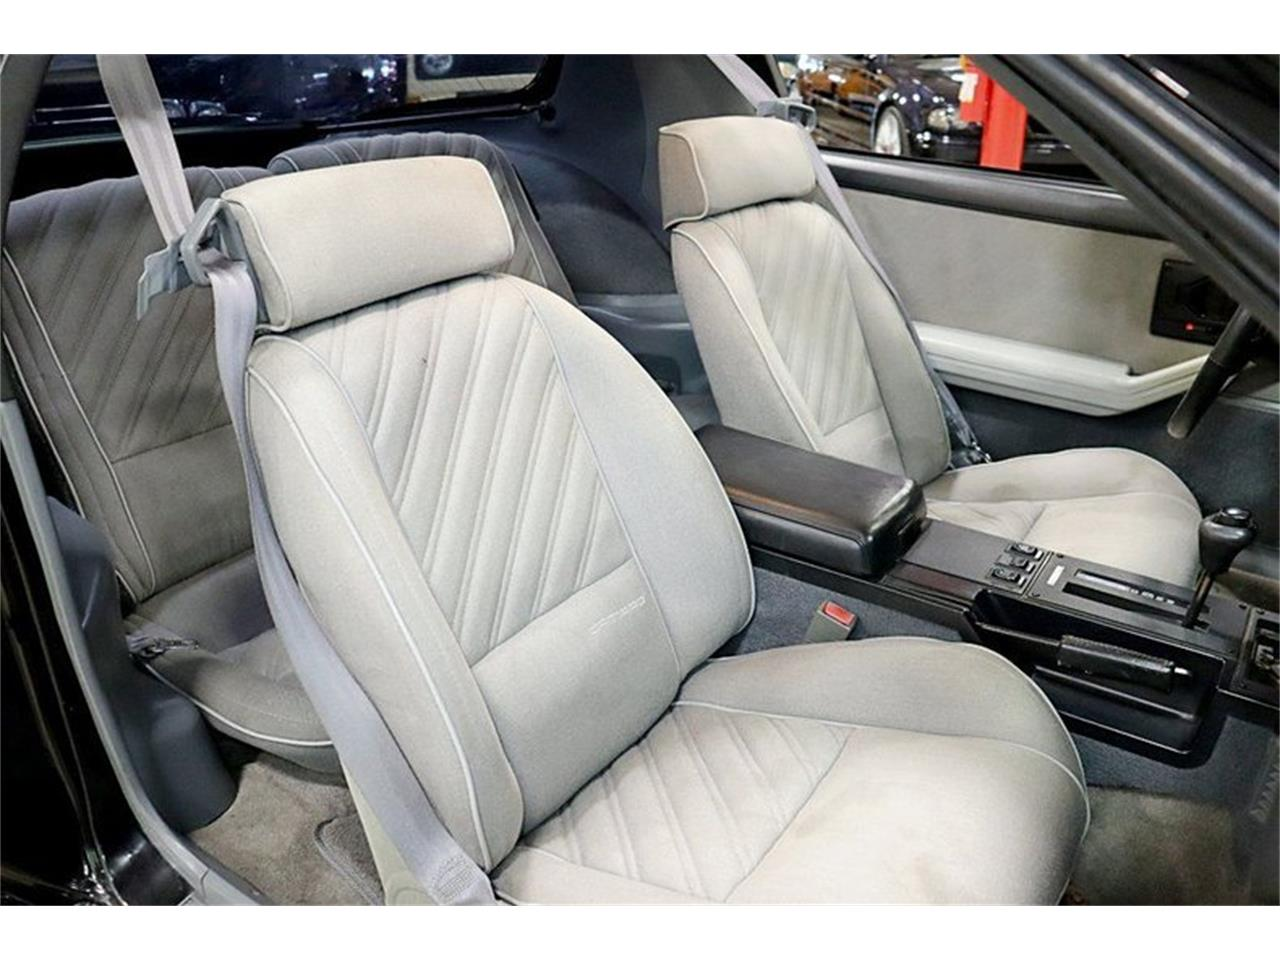 Large Picture of 1987 Chevrolet Camaro Z28 located in Kentwood Michigan - $11,900.00 - QSF0